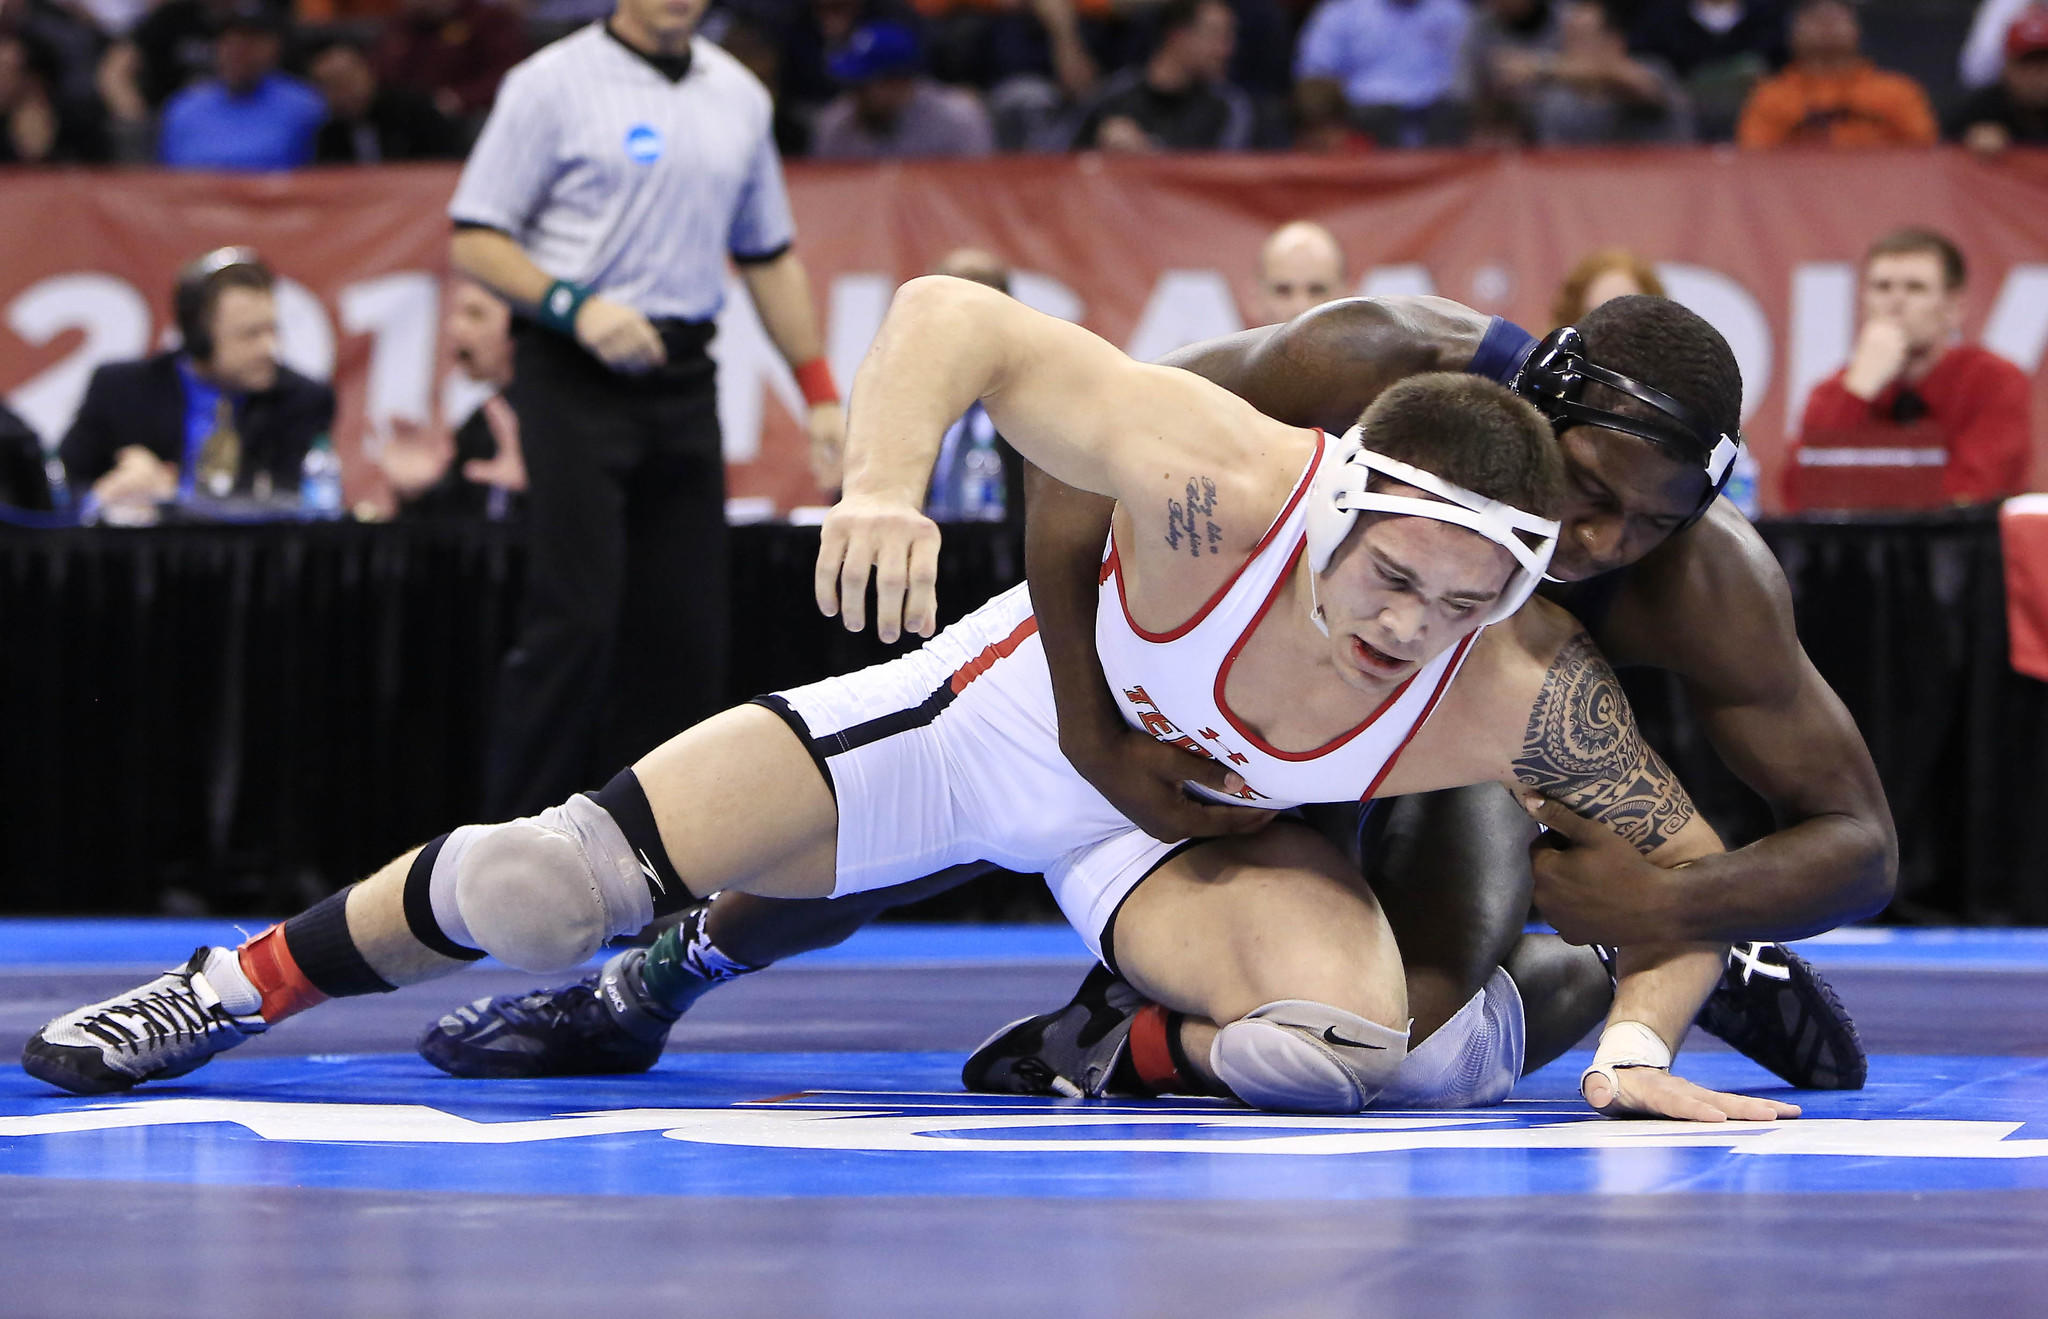 Penn State's Edward Ruth grapples with Maryland's Jimmy Sheptock in the 184-pound final. Ruth won the title, handing Sheptock his first defeat of the season.